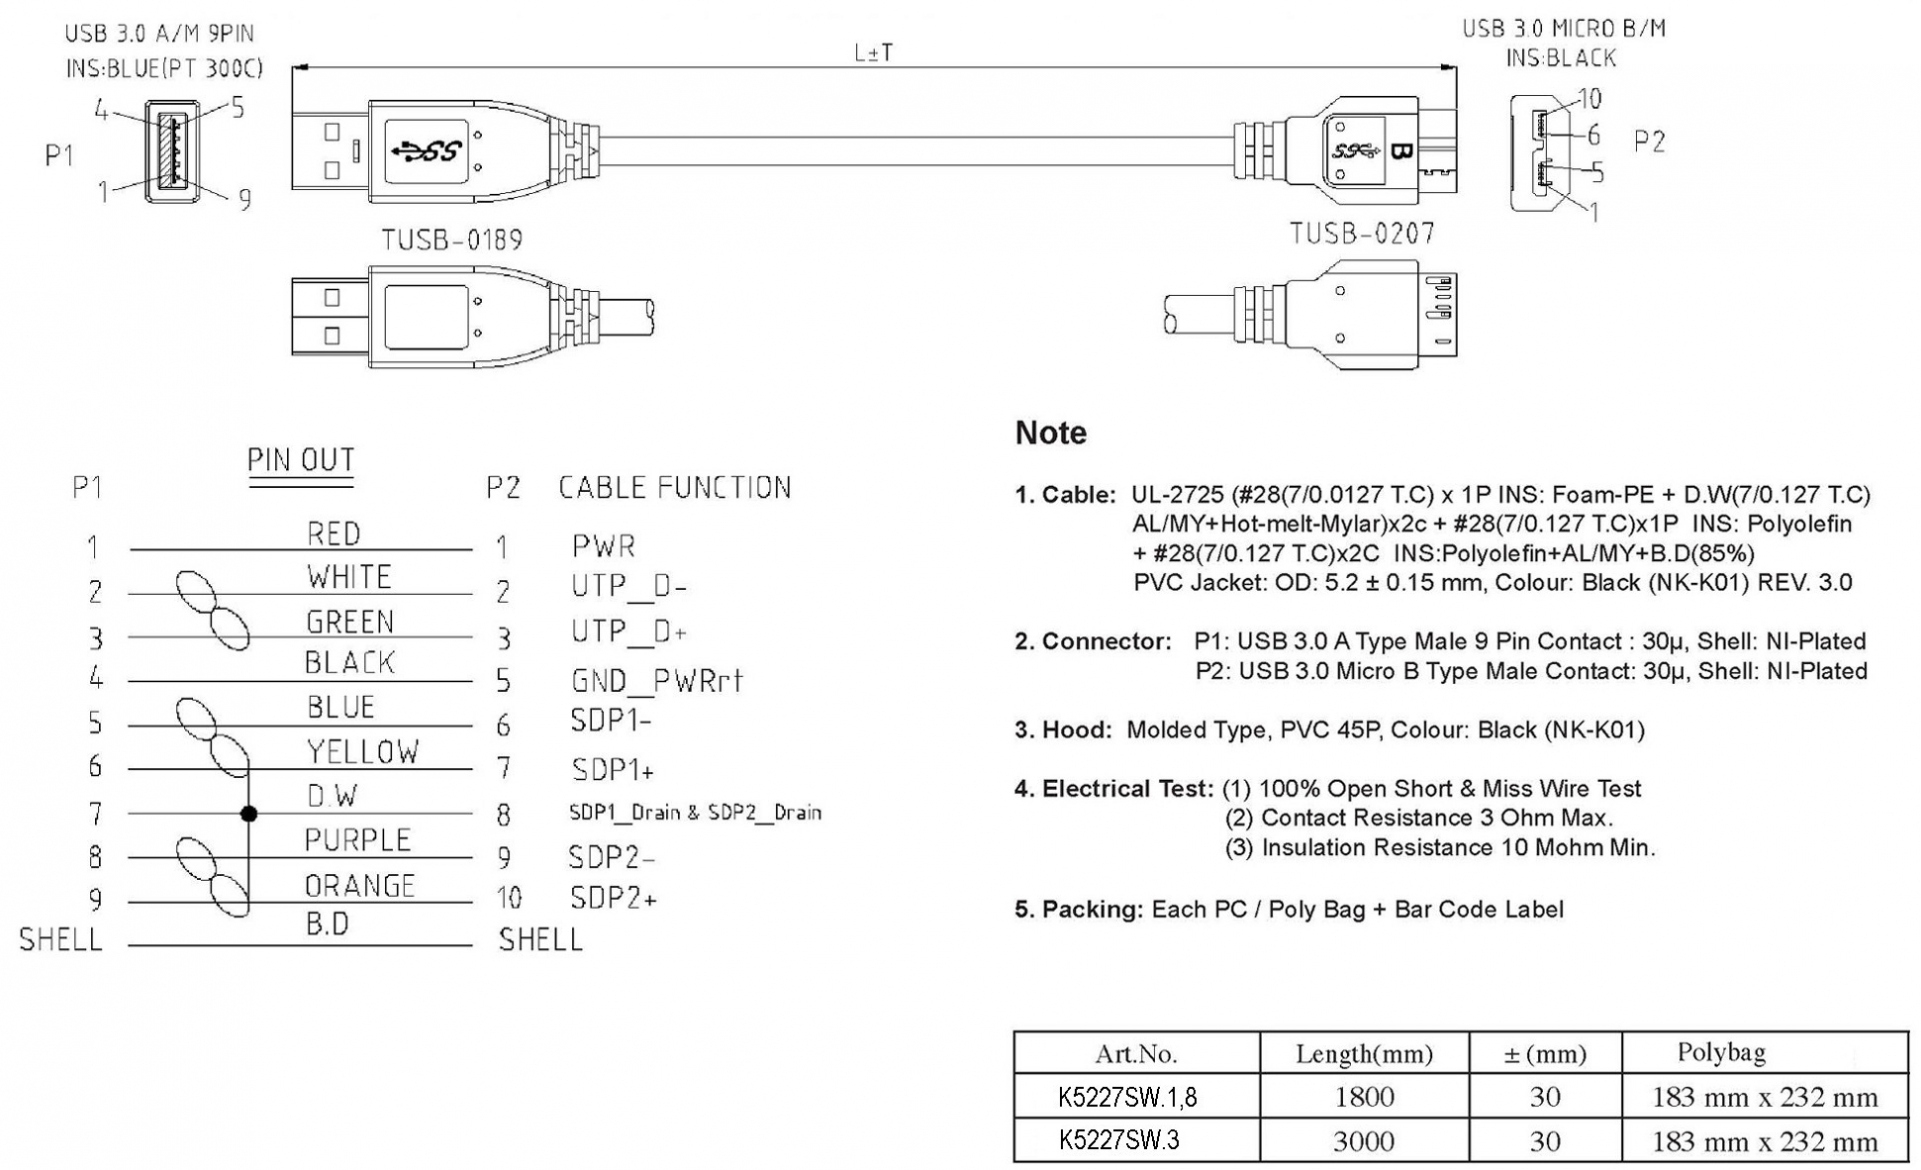 Usb 9 Pin Connector Wiring Diagram | Wiring Diagram - Usb Wiring Diagram Cable To 15 Plug